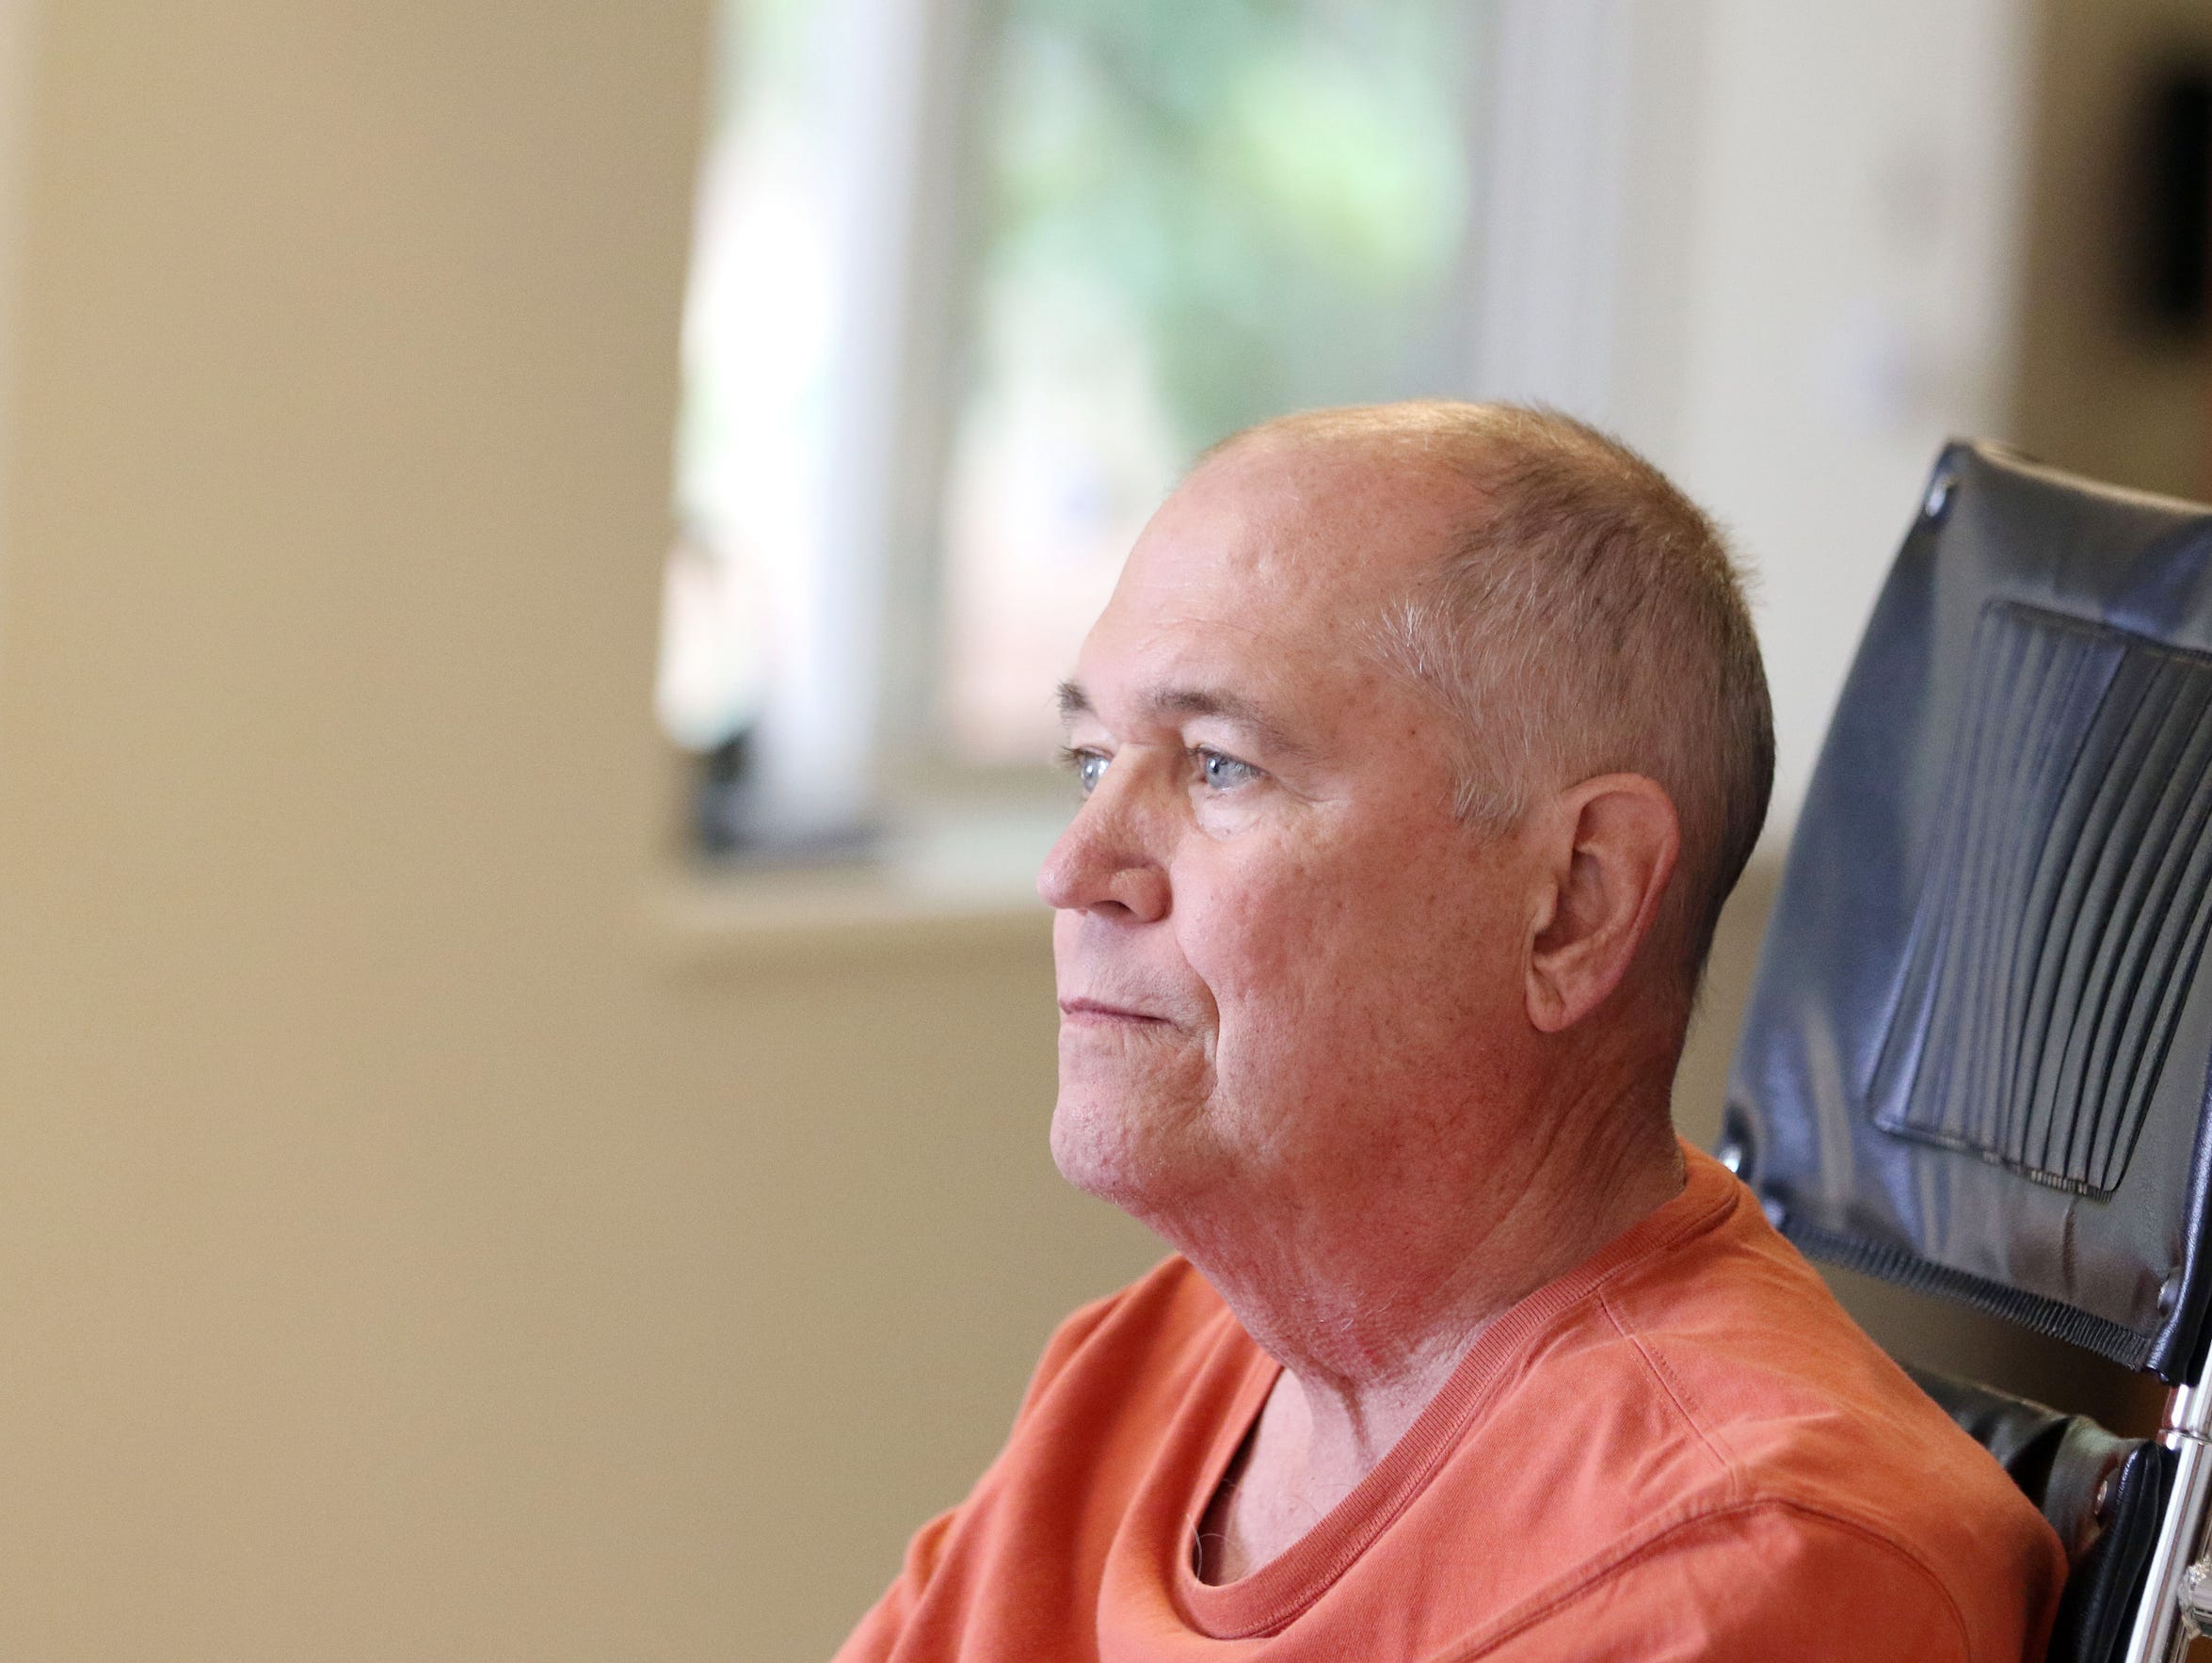 Dr. Peter Rasmussen, a retired oncologist and advocate